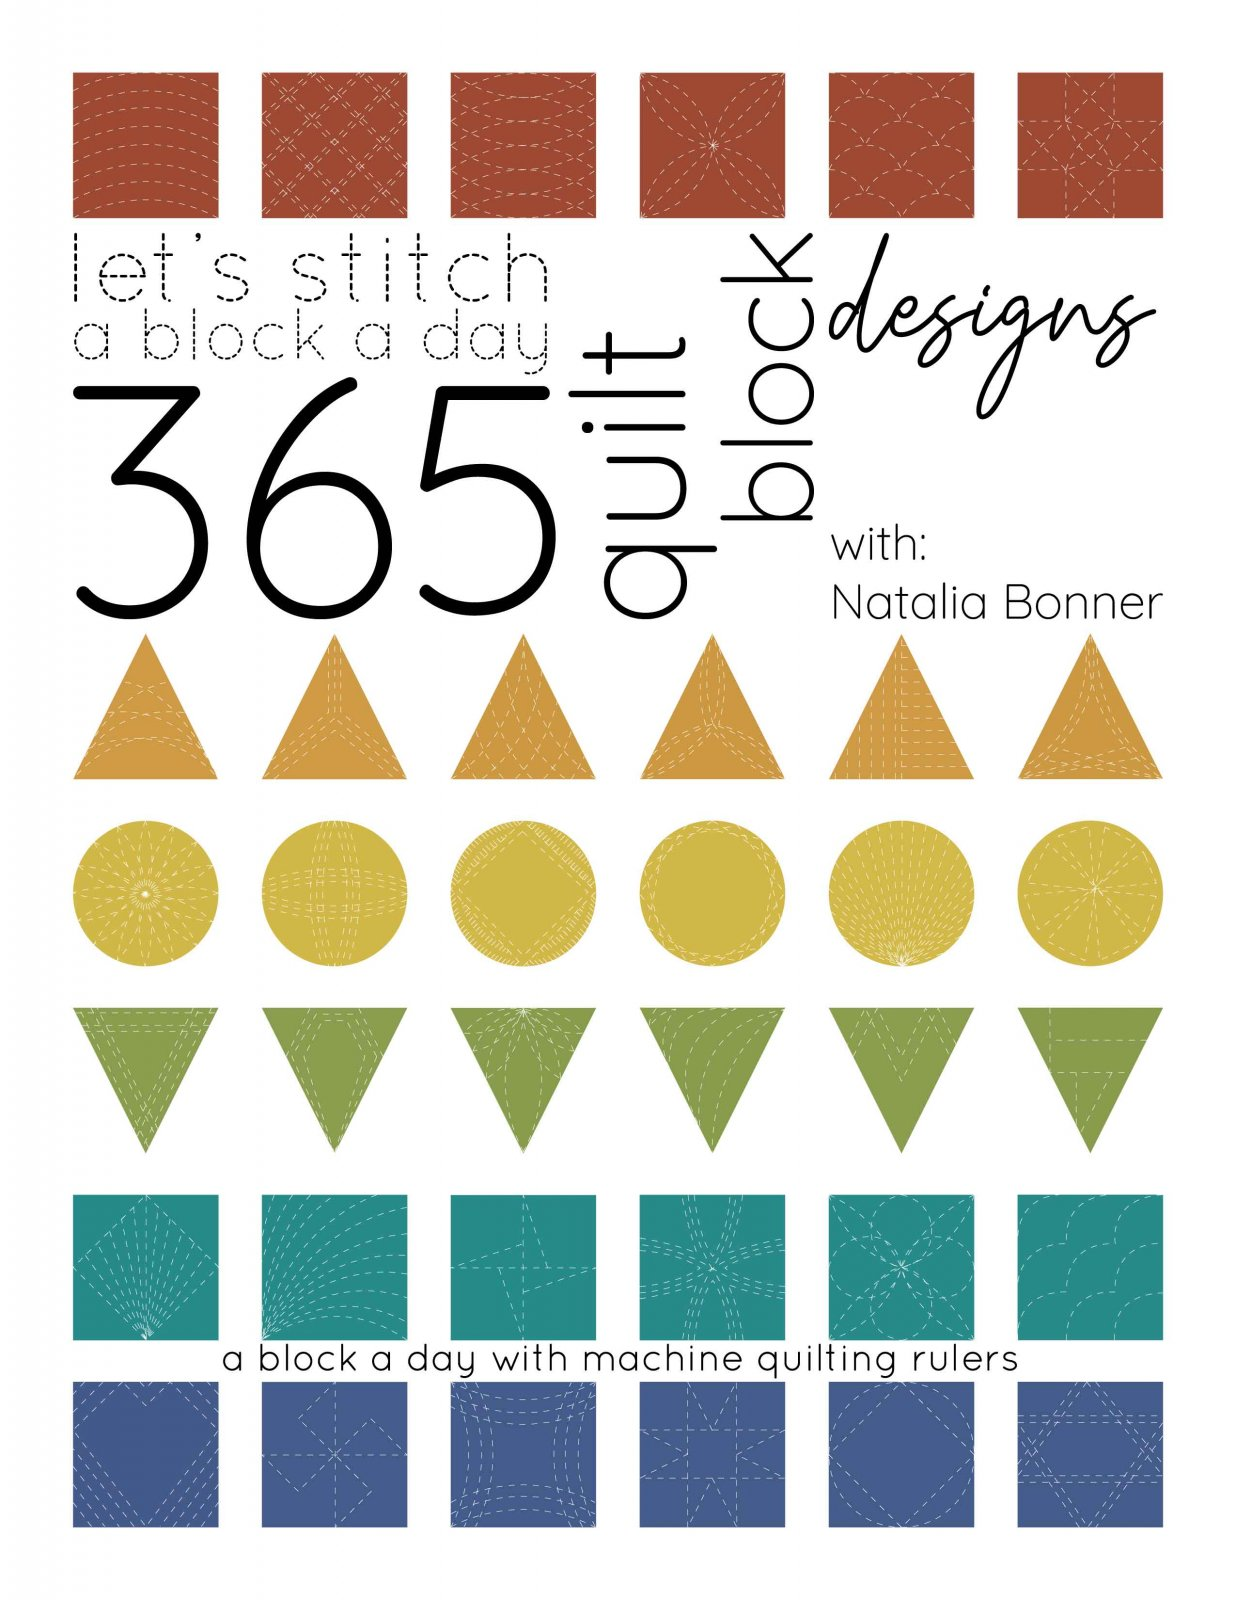 Let's Stitch - 365 Quilt Block Designs - With Natalia Bonner